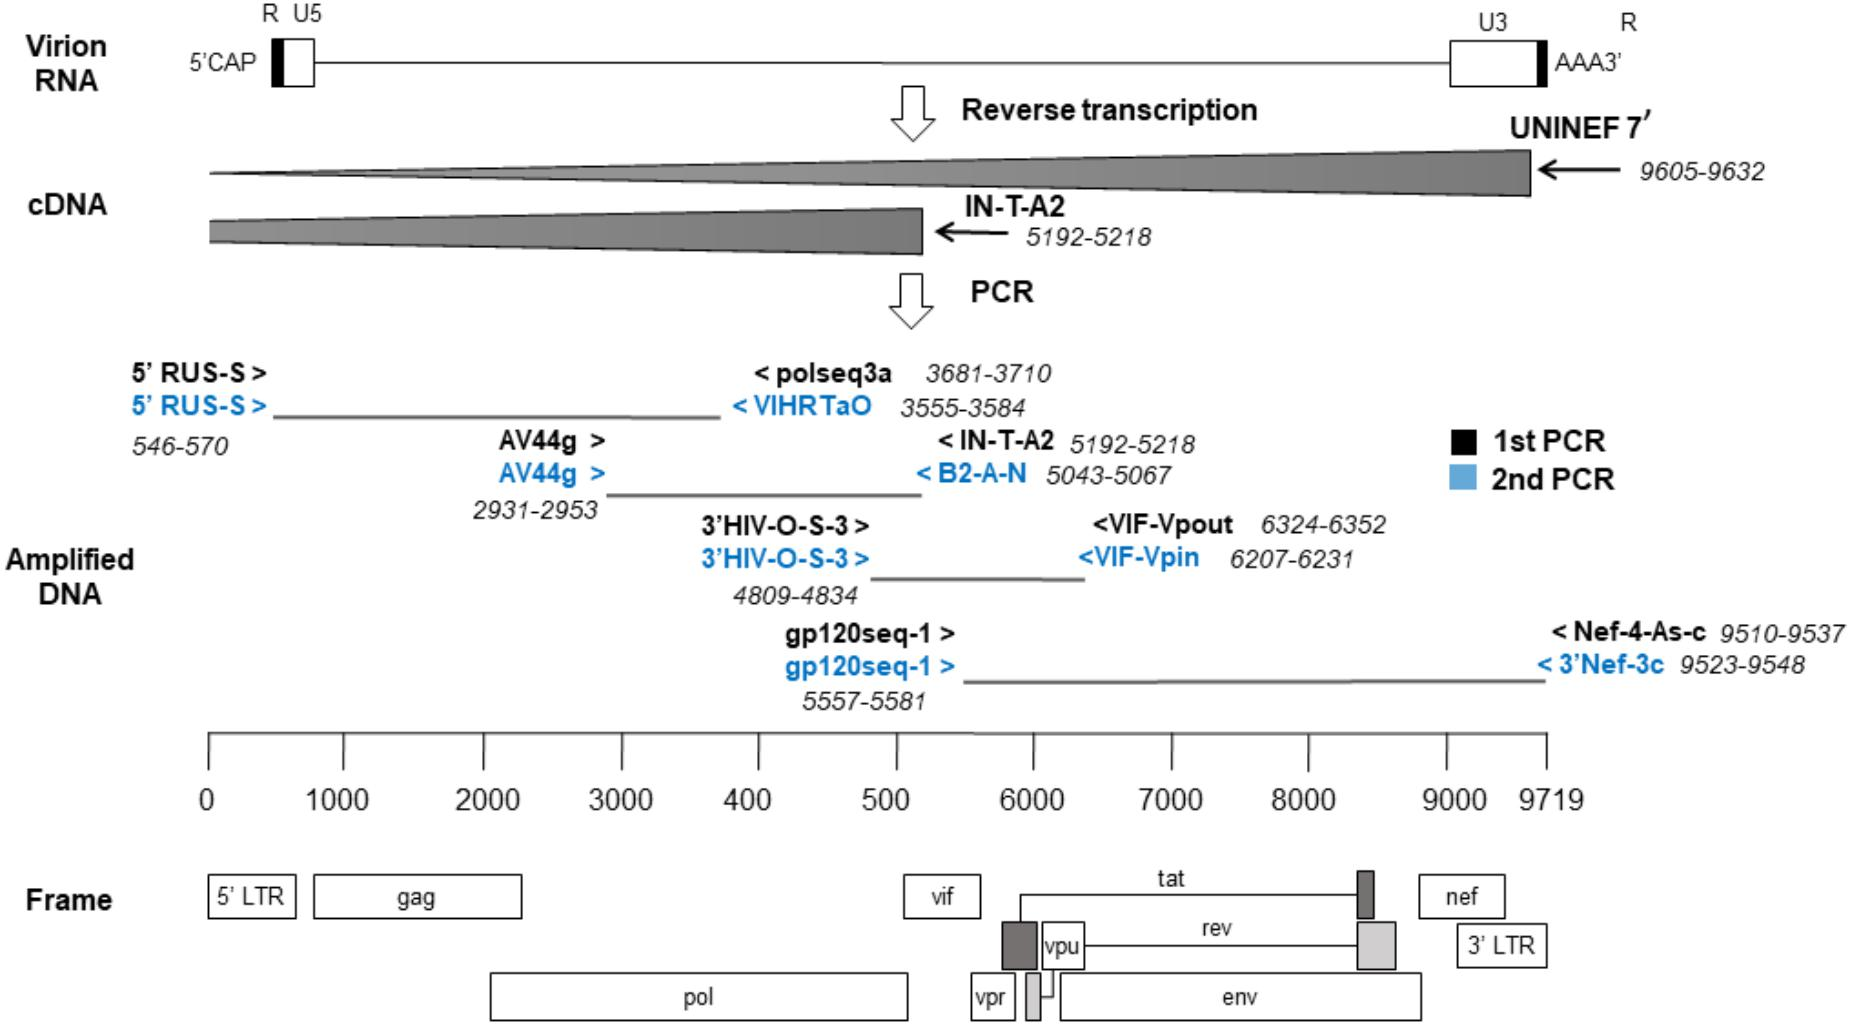 Frontiers | Characterization of New Recombinant Forms of HIV-1 From